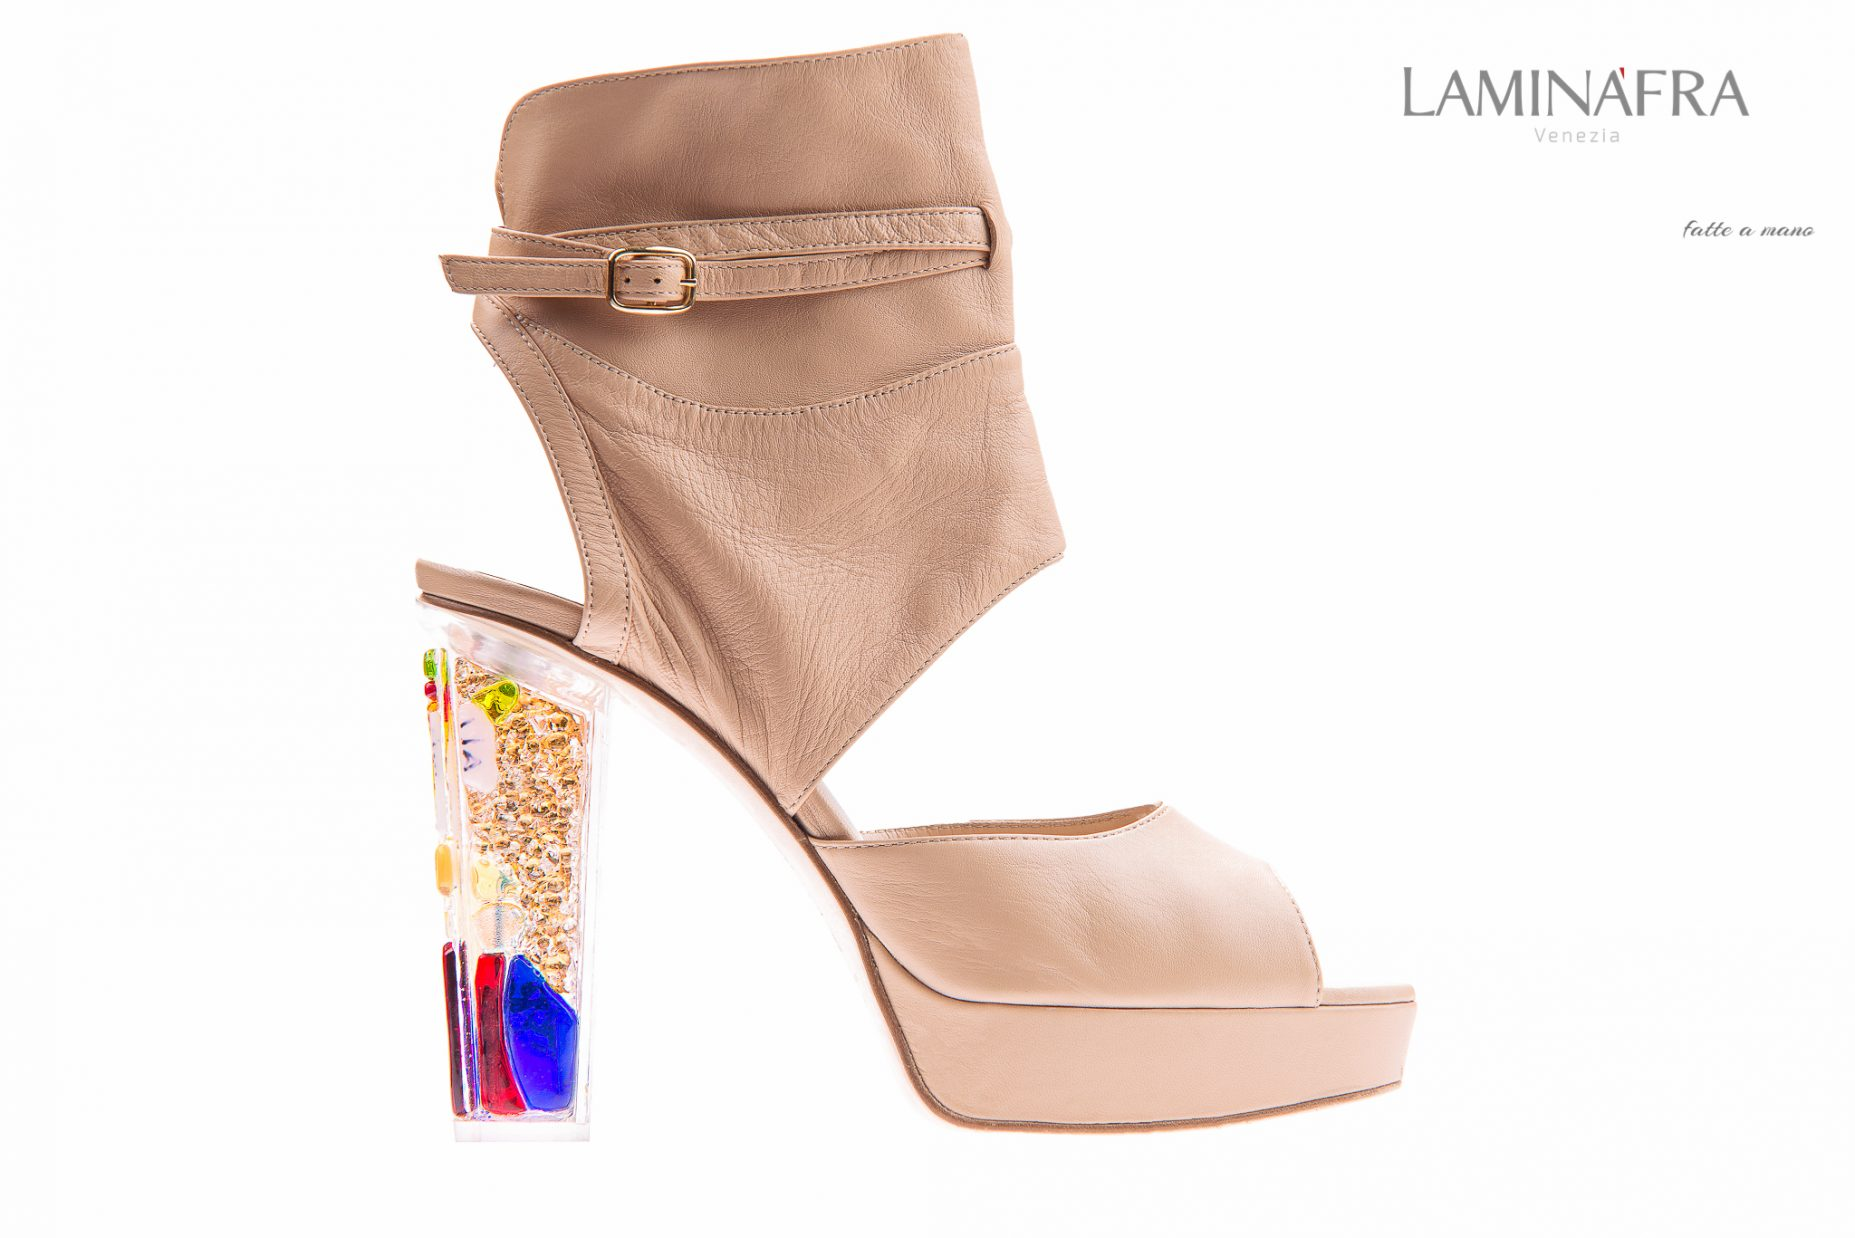 Laminafra Luxury Shoes – Still life e fashion catalogue for www.laminafra.it